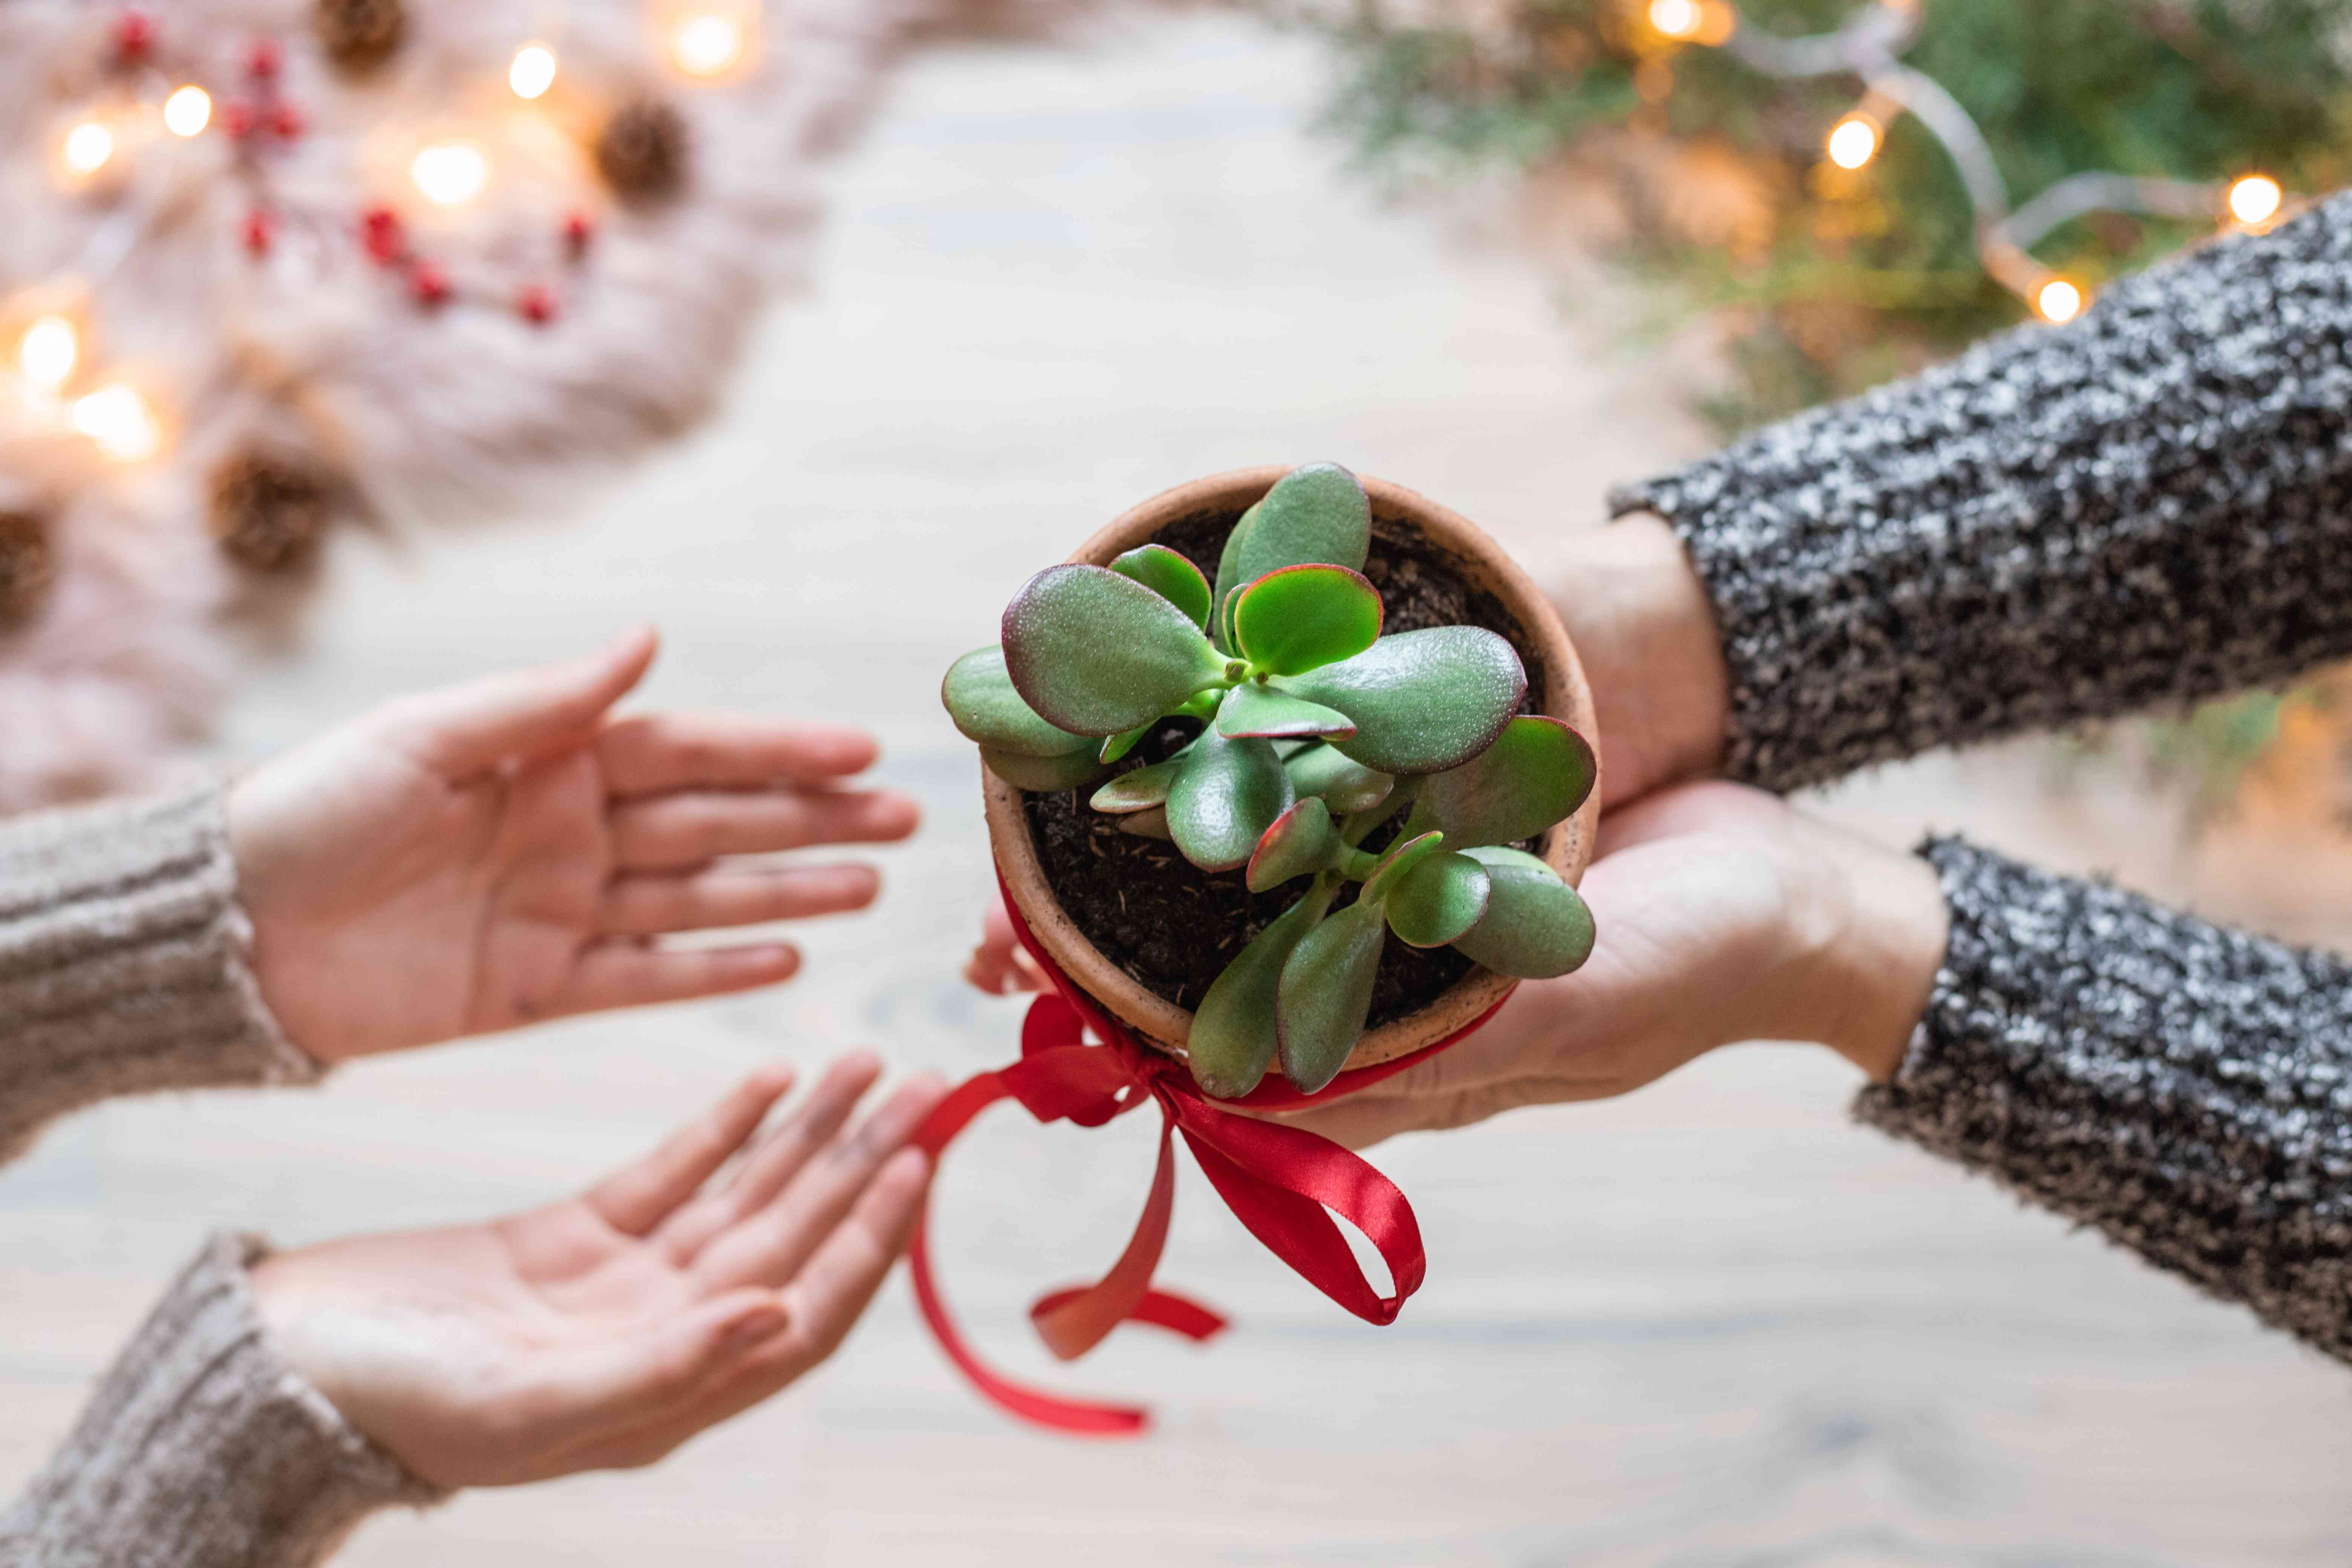 two friends exchange jade plant gift with christmas decor nearby